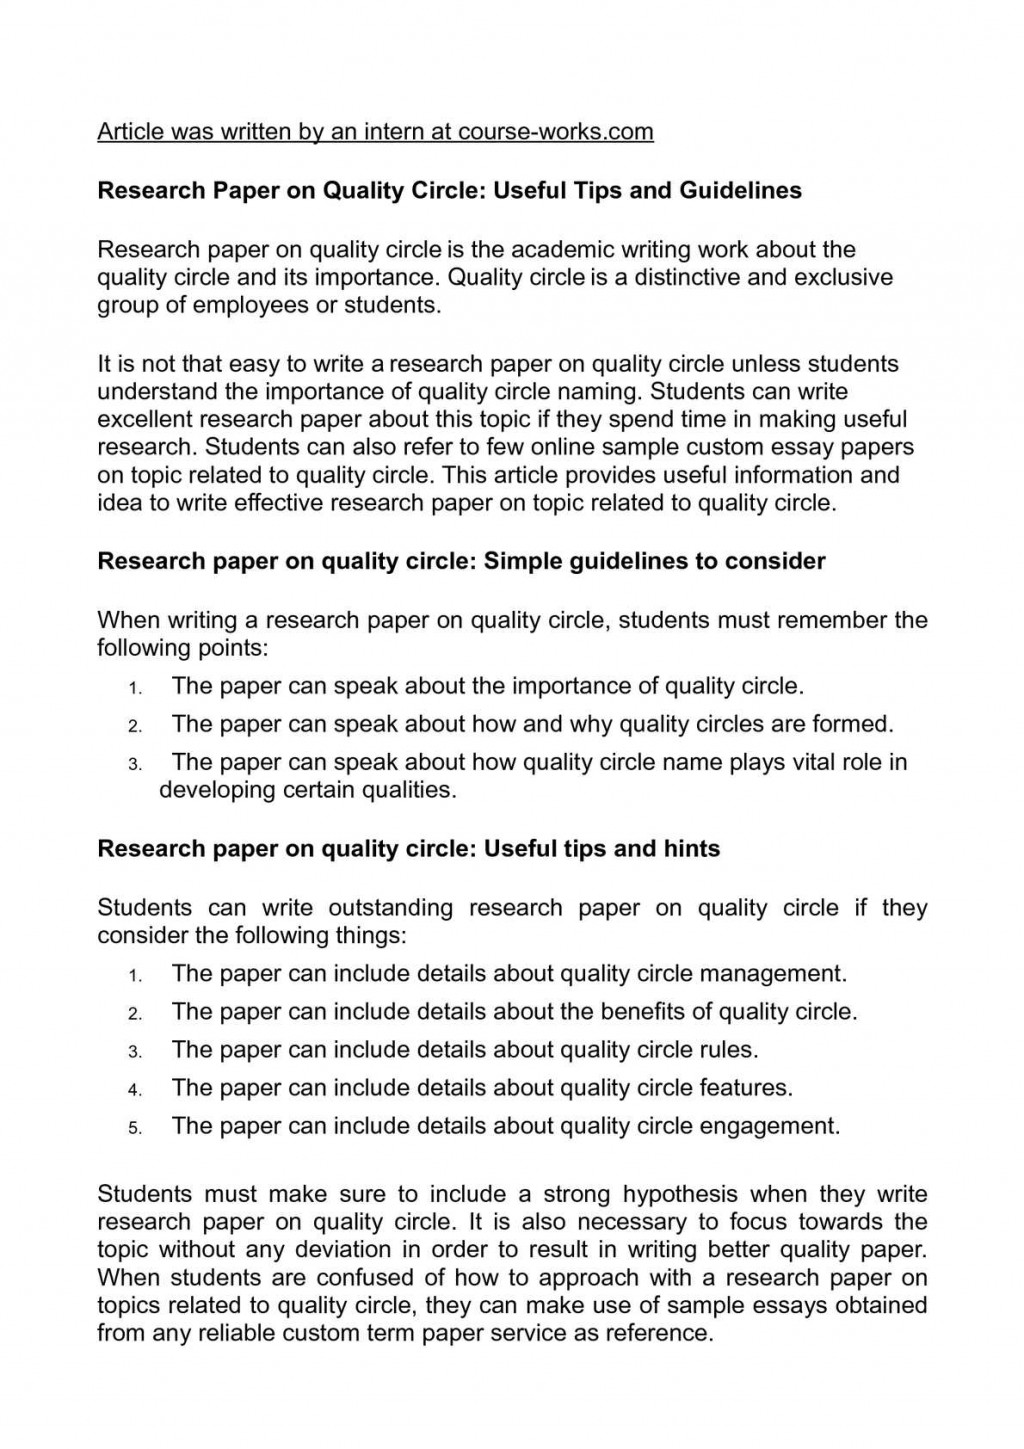 012 P1 Already Written Researchs Excellent Research Papers For Free Pre Sale Large